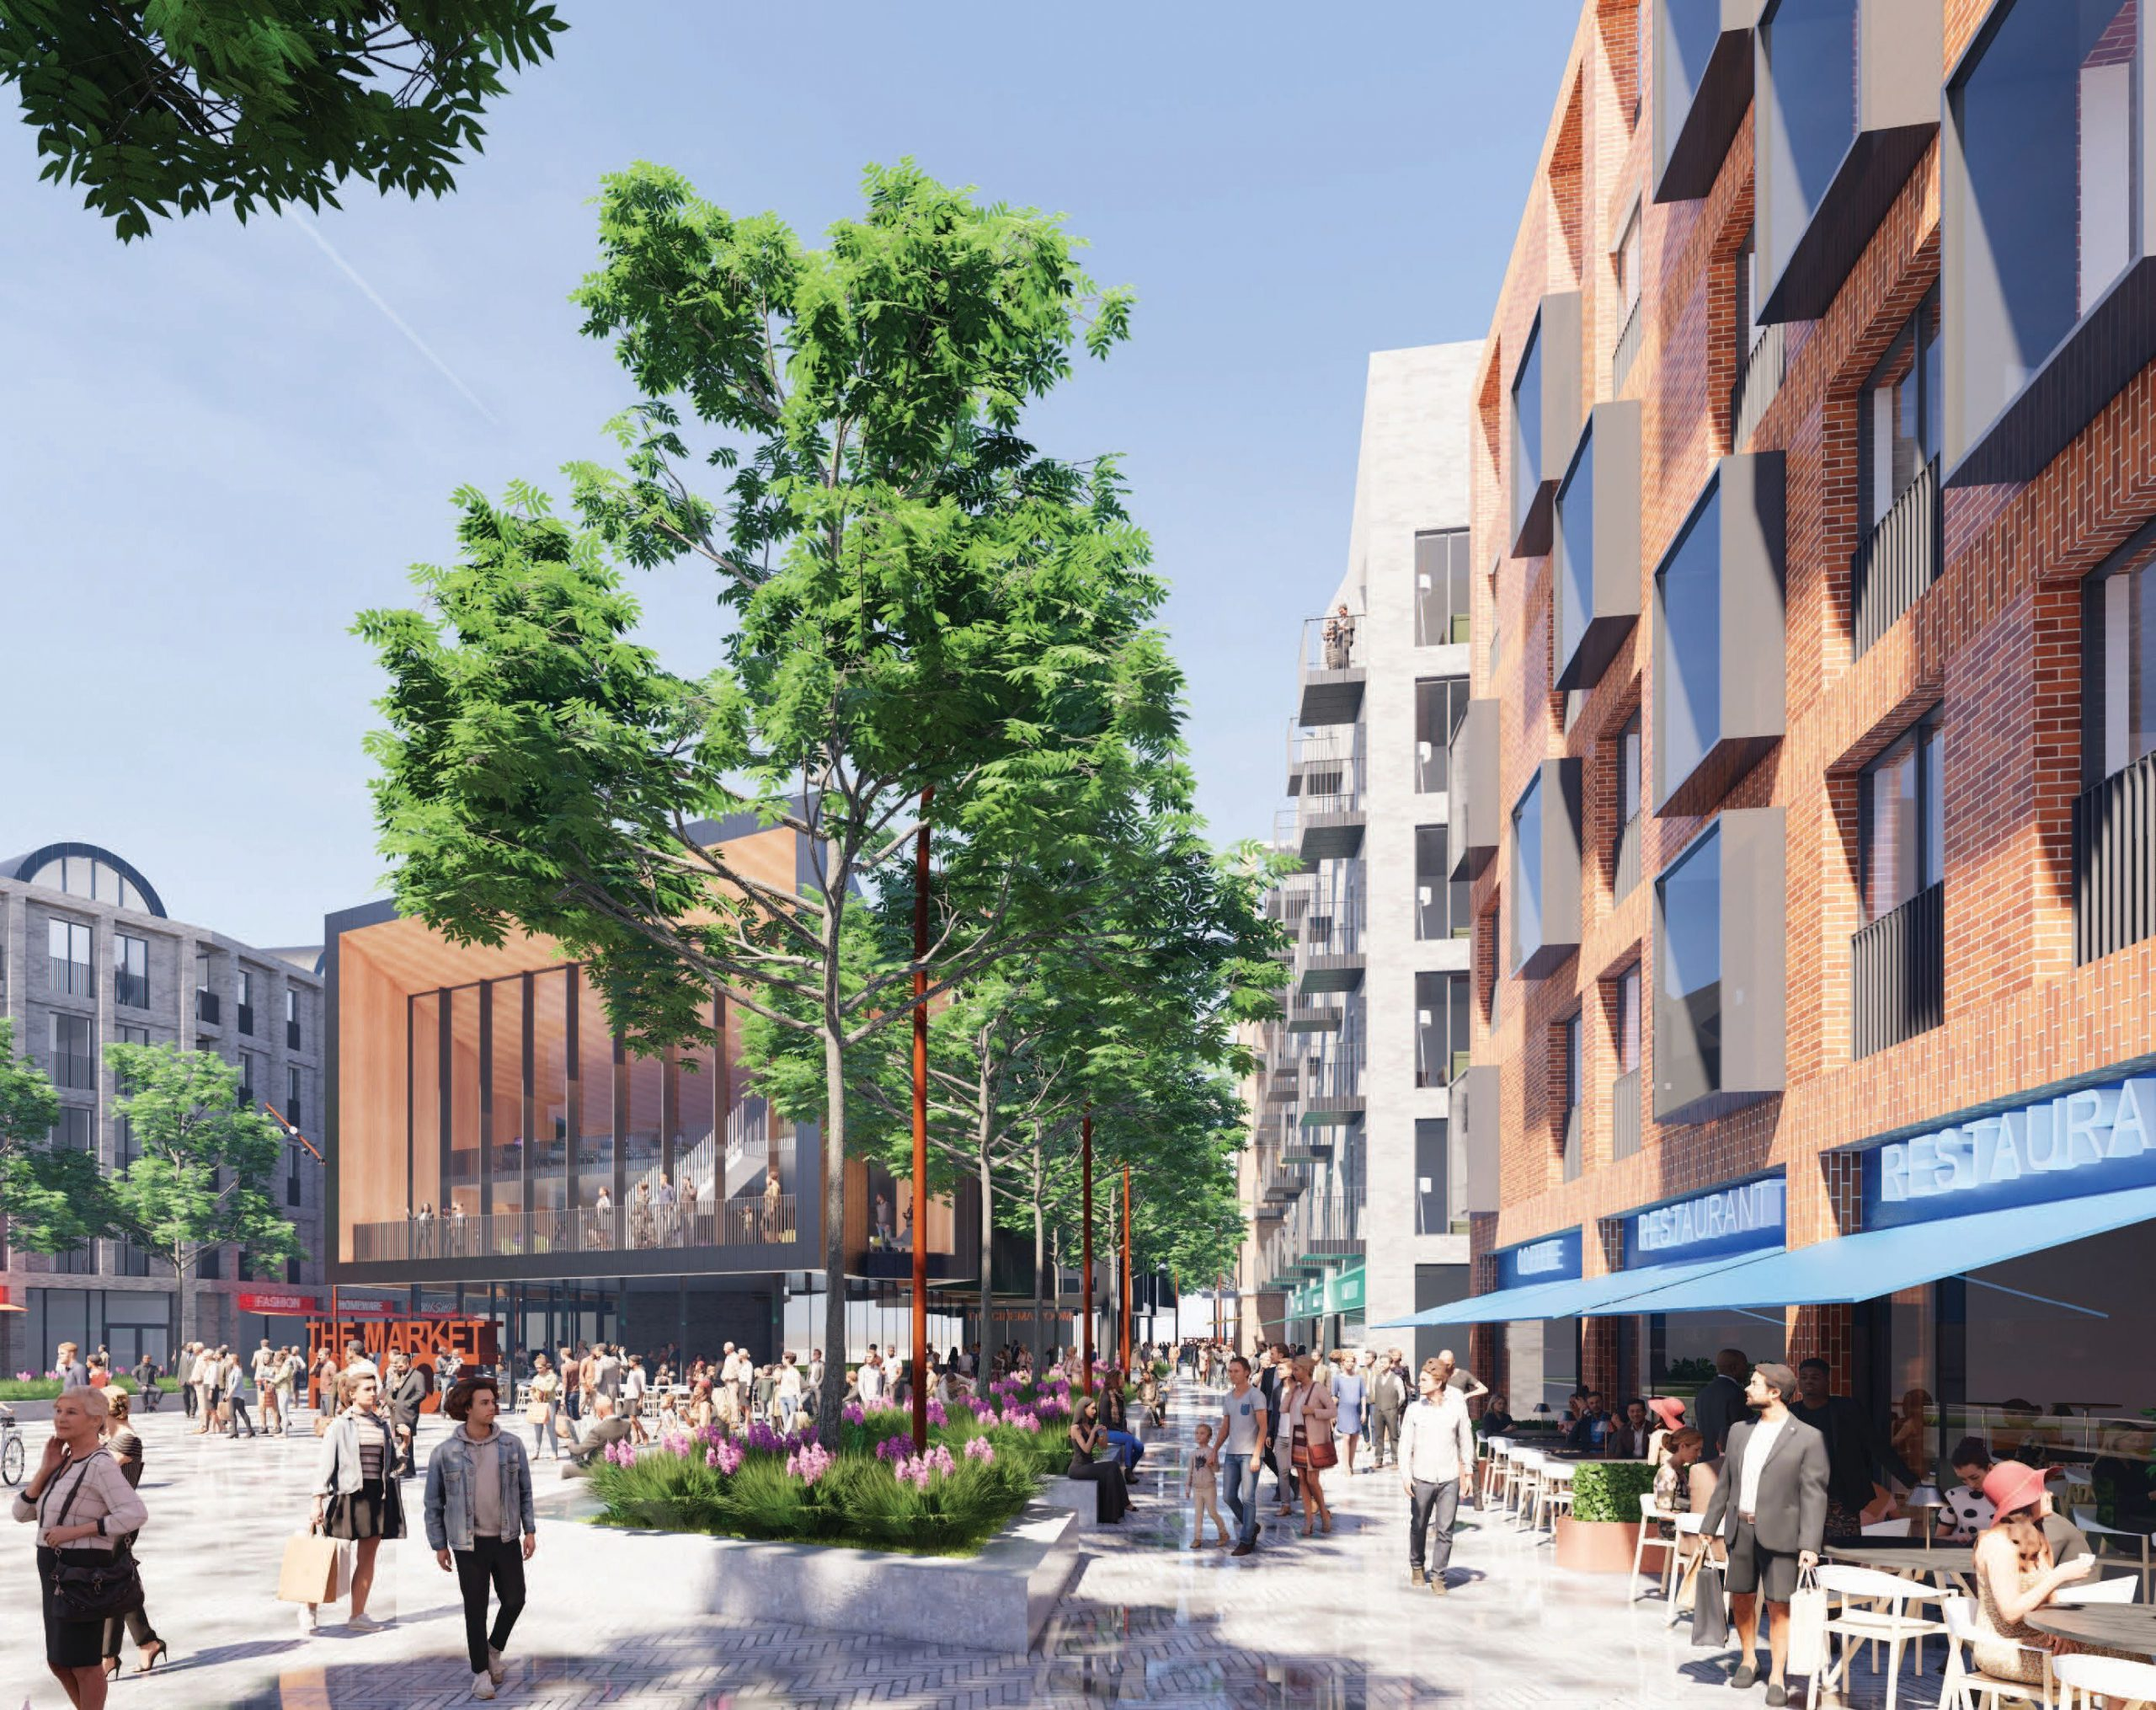 MANCTOPIA'S CAPITAL&CENTRIC TO DELIVER £50M COMMUNITY IN FARNWORTH TOWN CENTRE